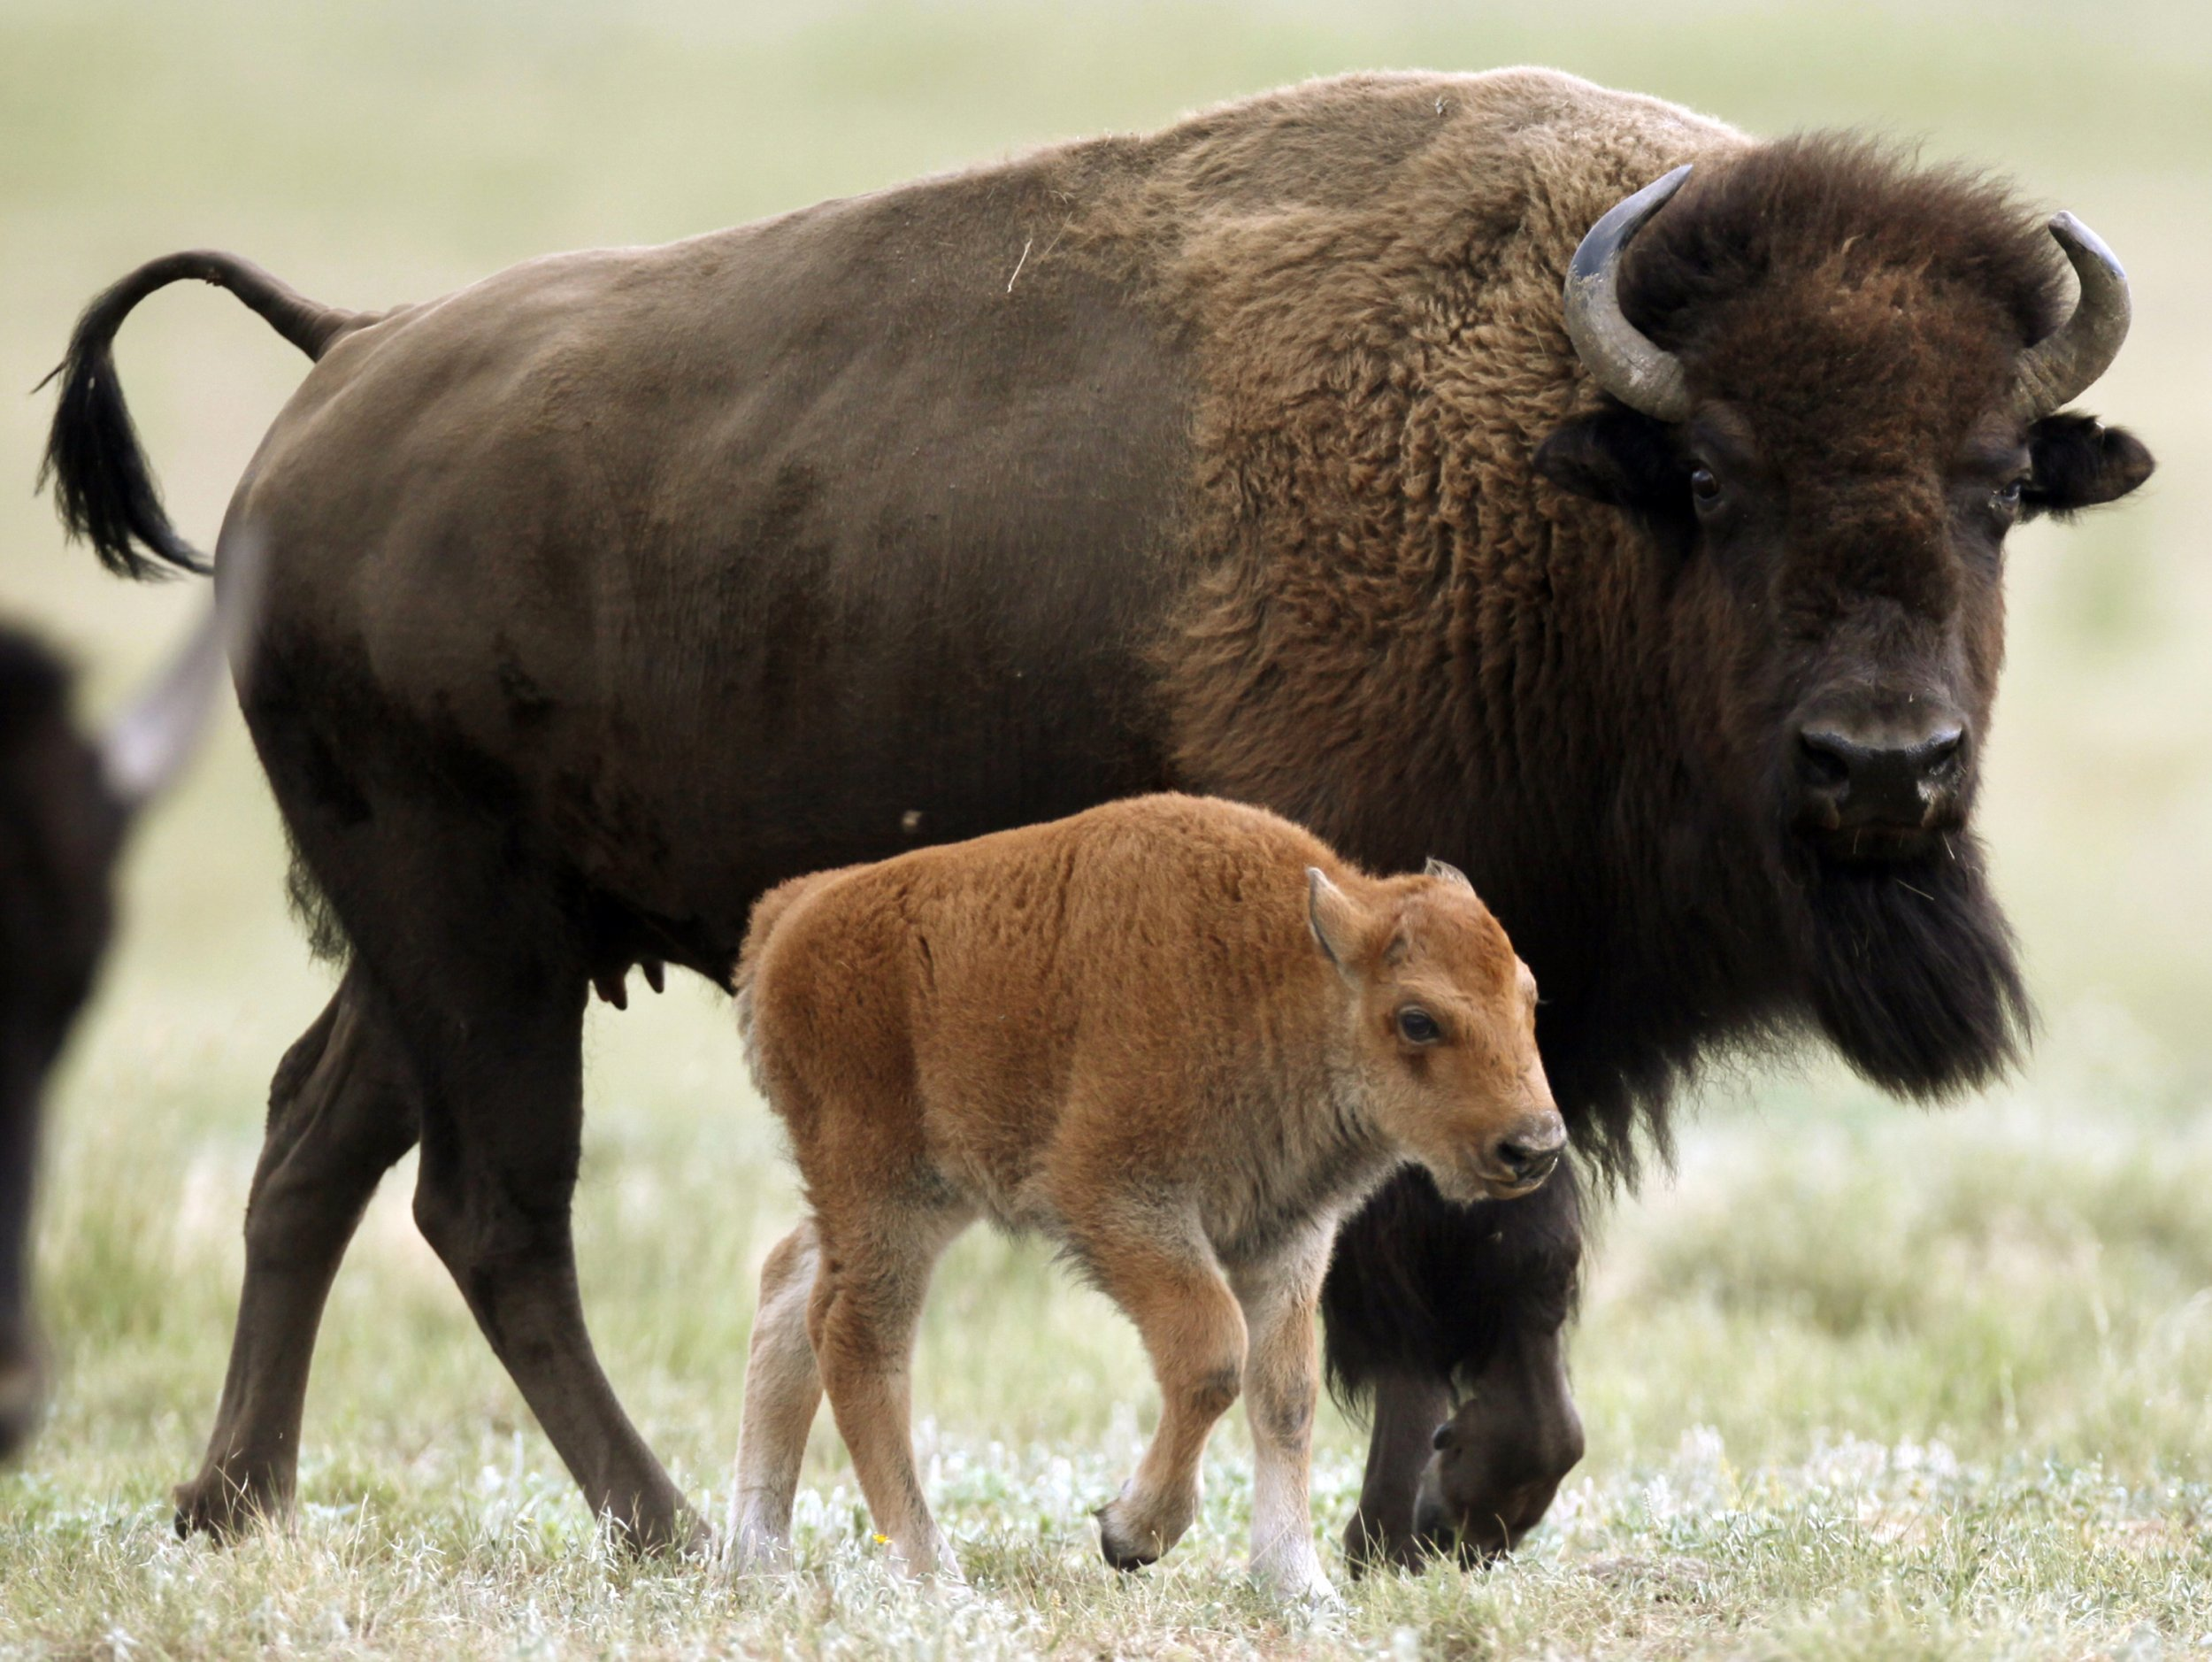 The Bison Didn't Stand a Chance